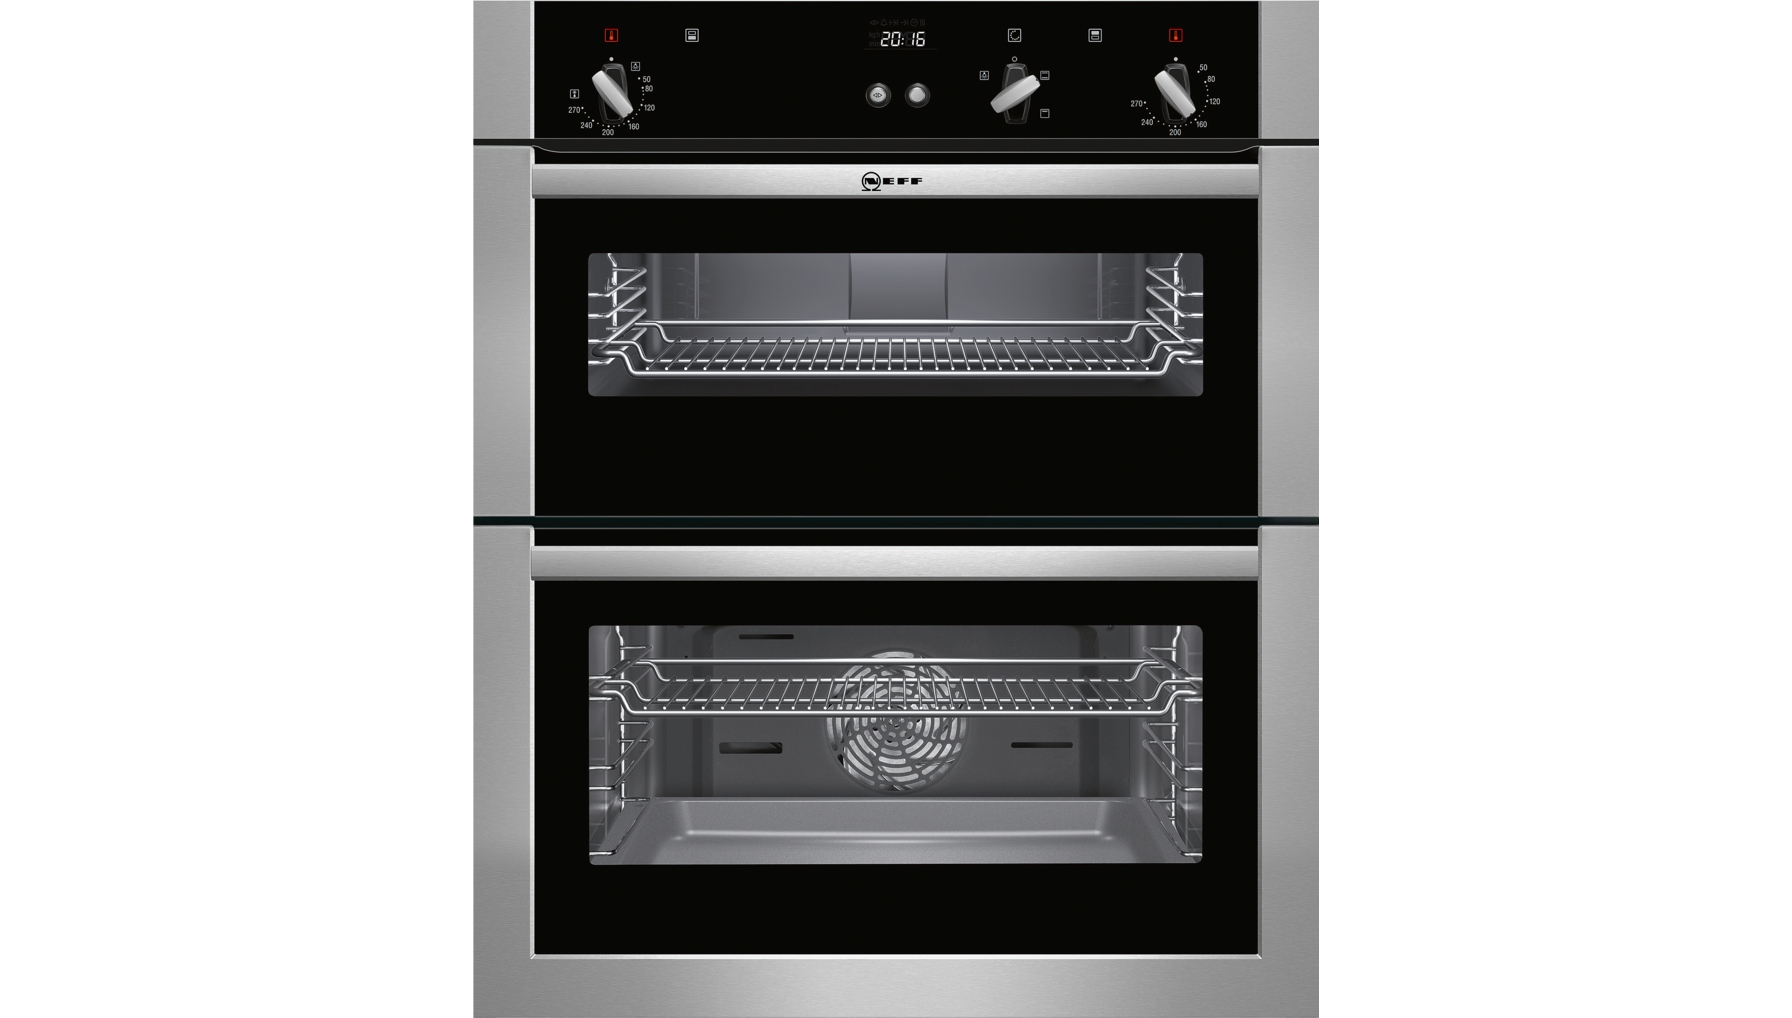 hight resolution of neff oven element wiring diagram wiring diagrams and schematics how to replace the fan oven element